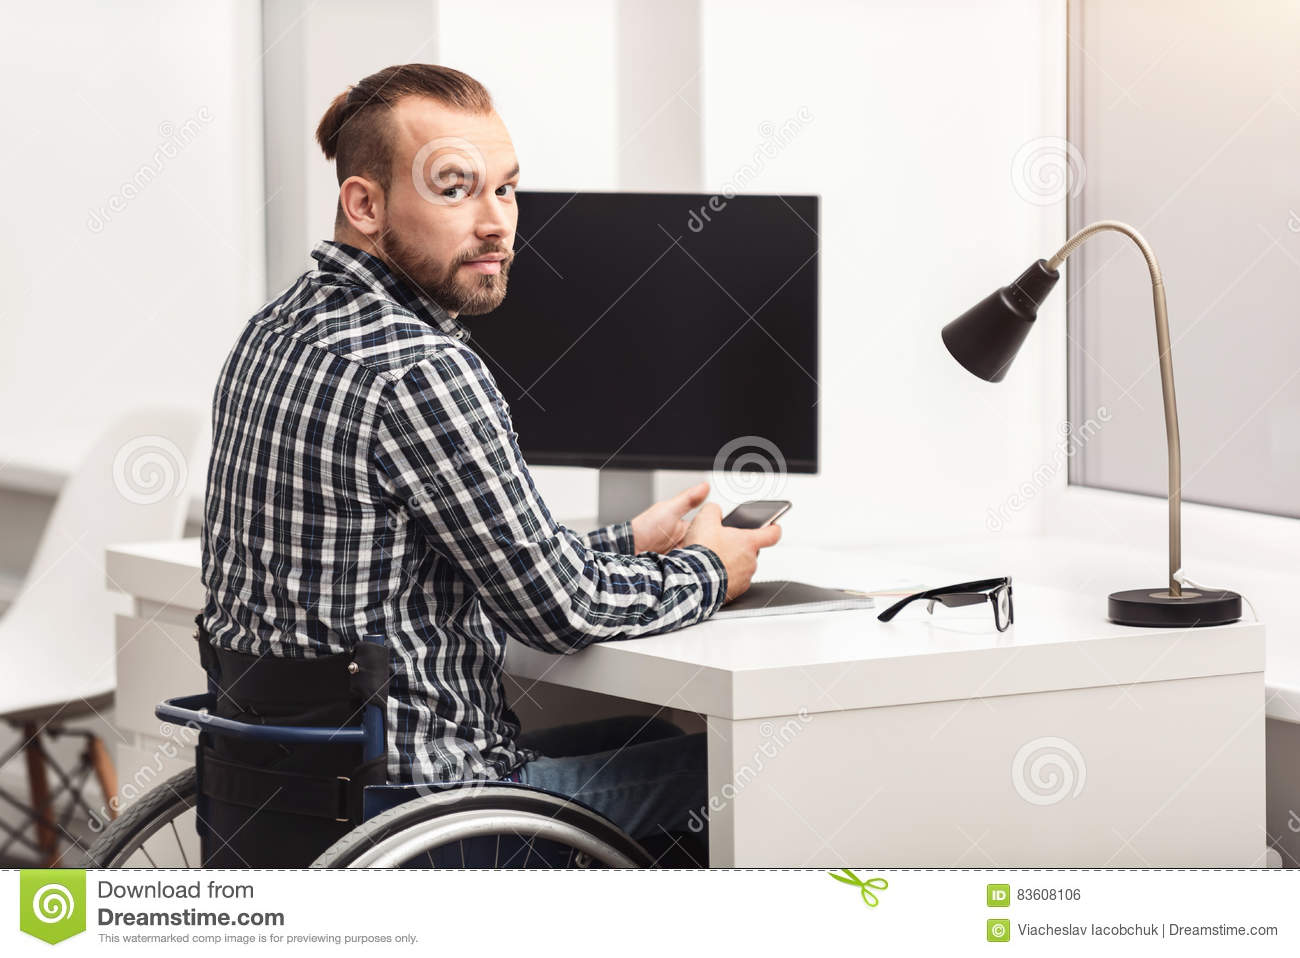 What kind of work at home is for the disabled